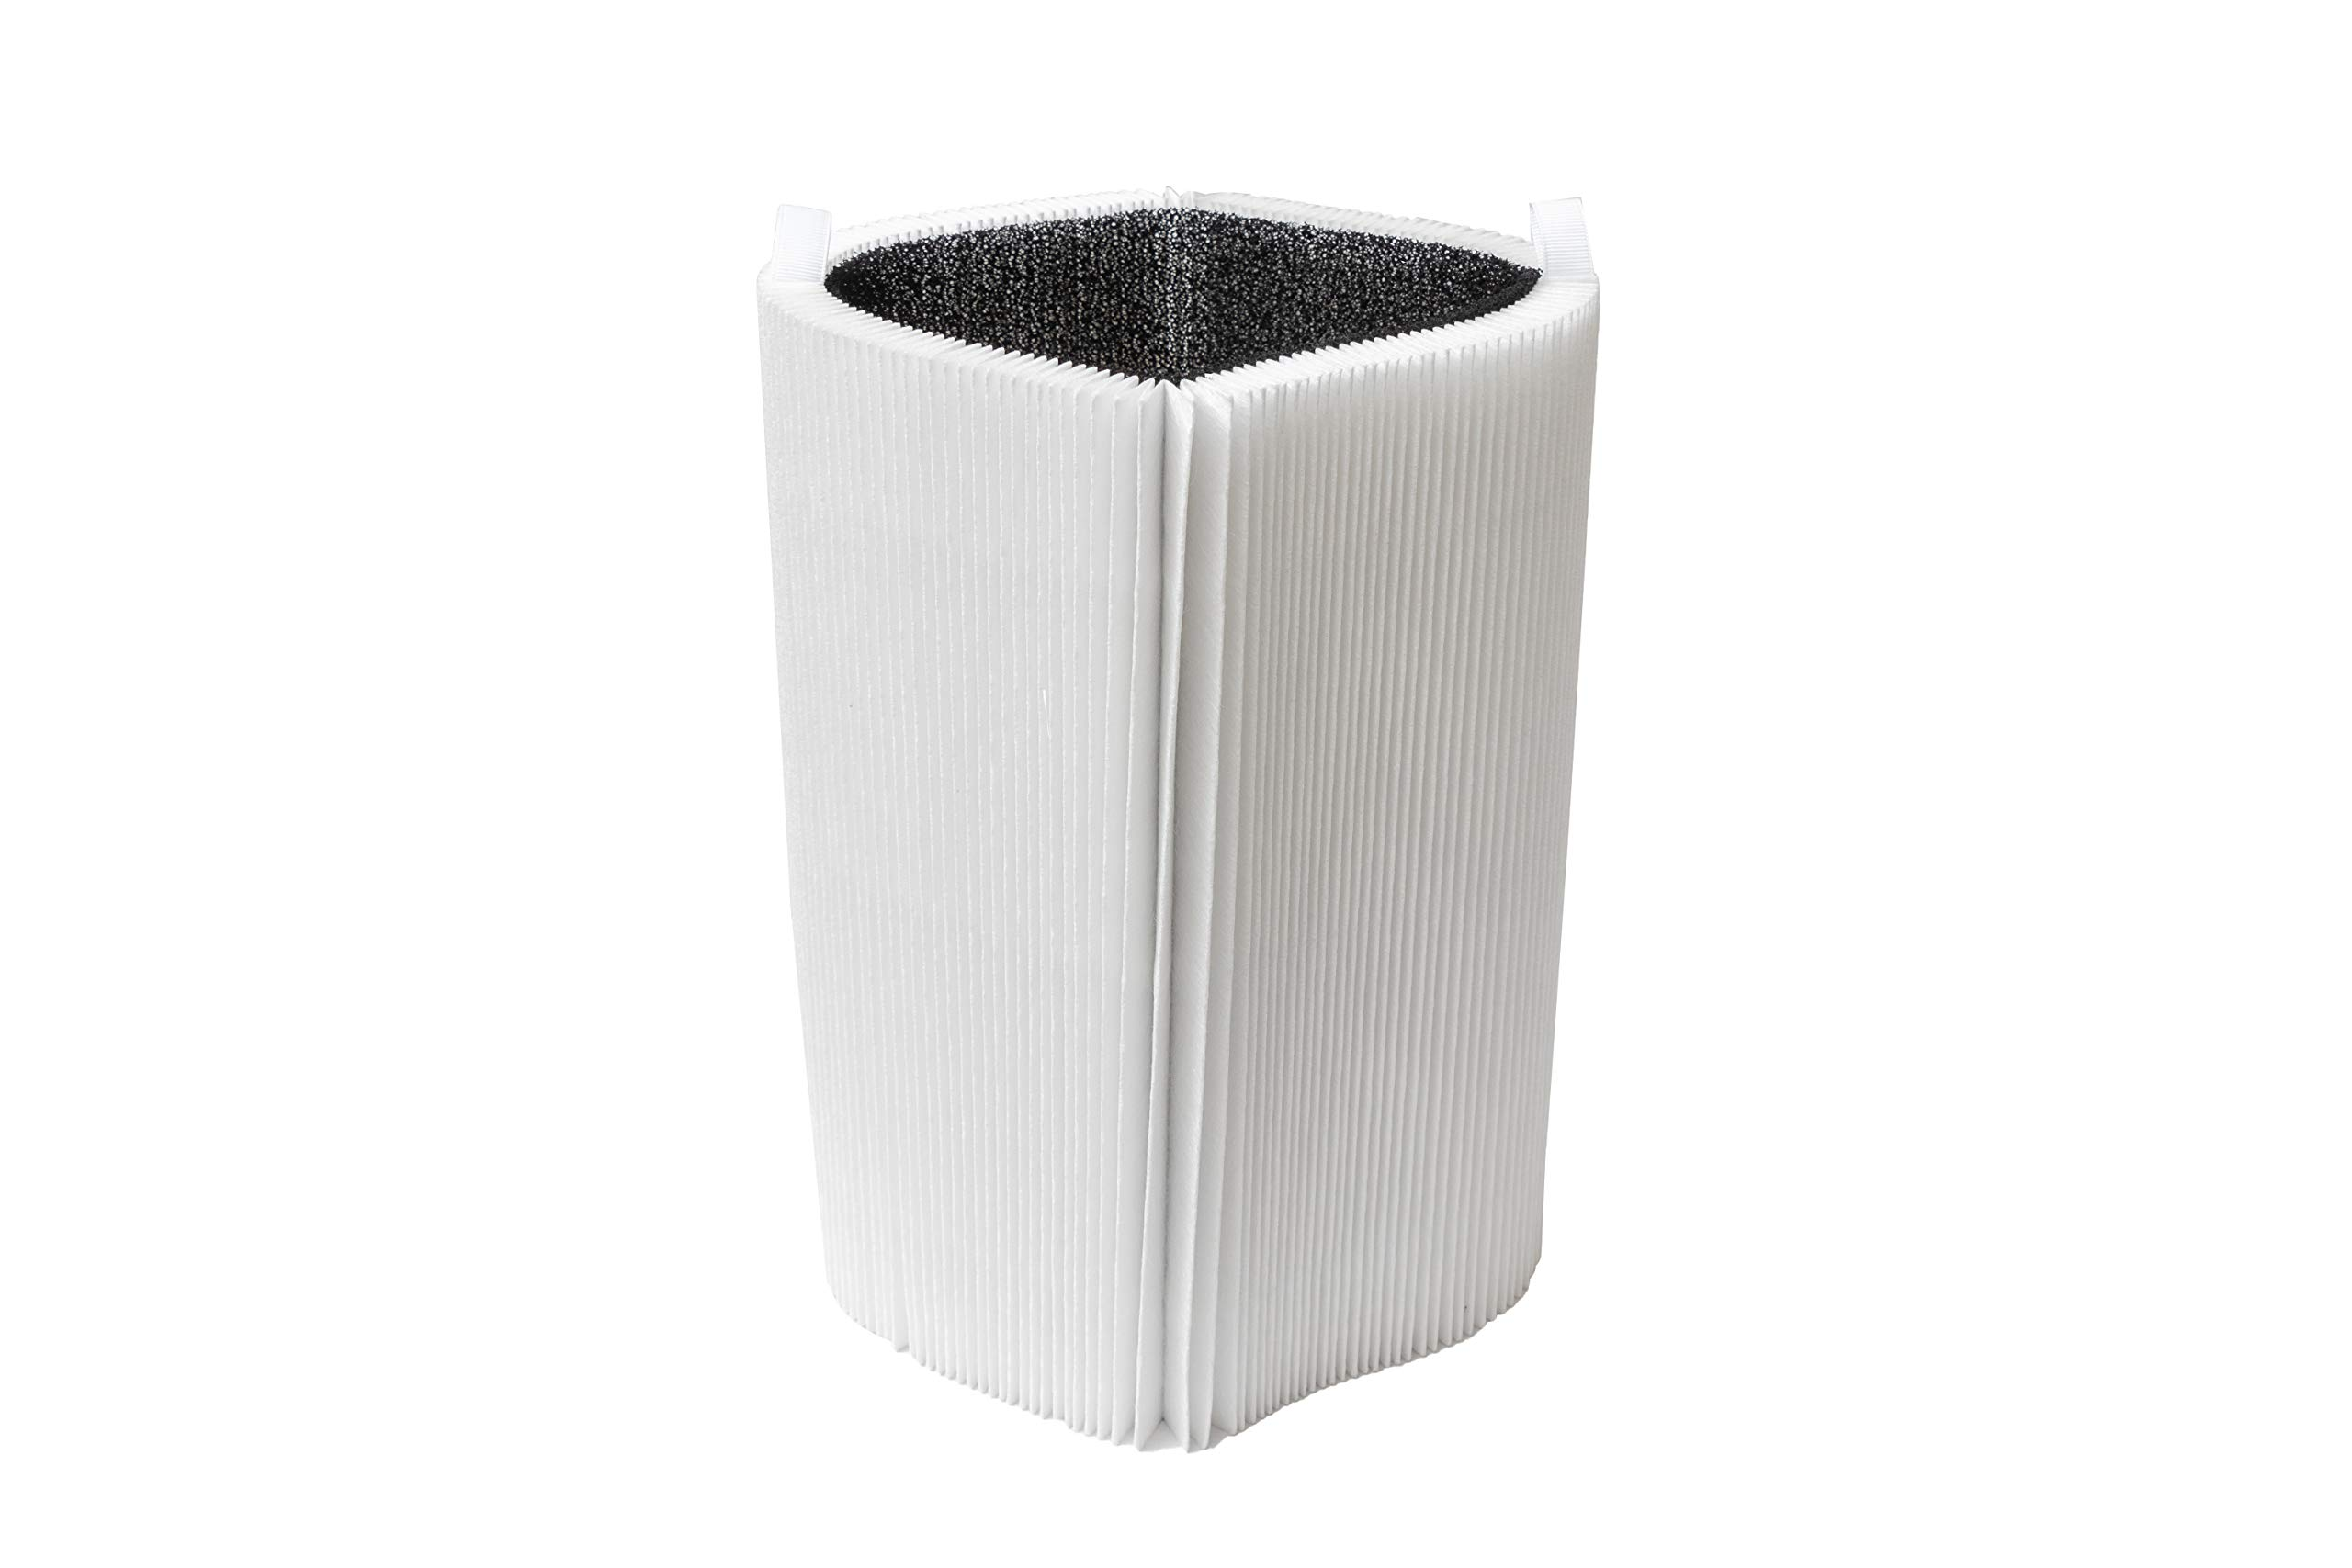 LifeSupplyUSA Replacement Collapsible Particle Carbon Filter Compatible with Blueair Blue Pure 411 Air Cleaner Purifier